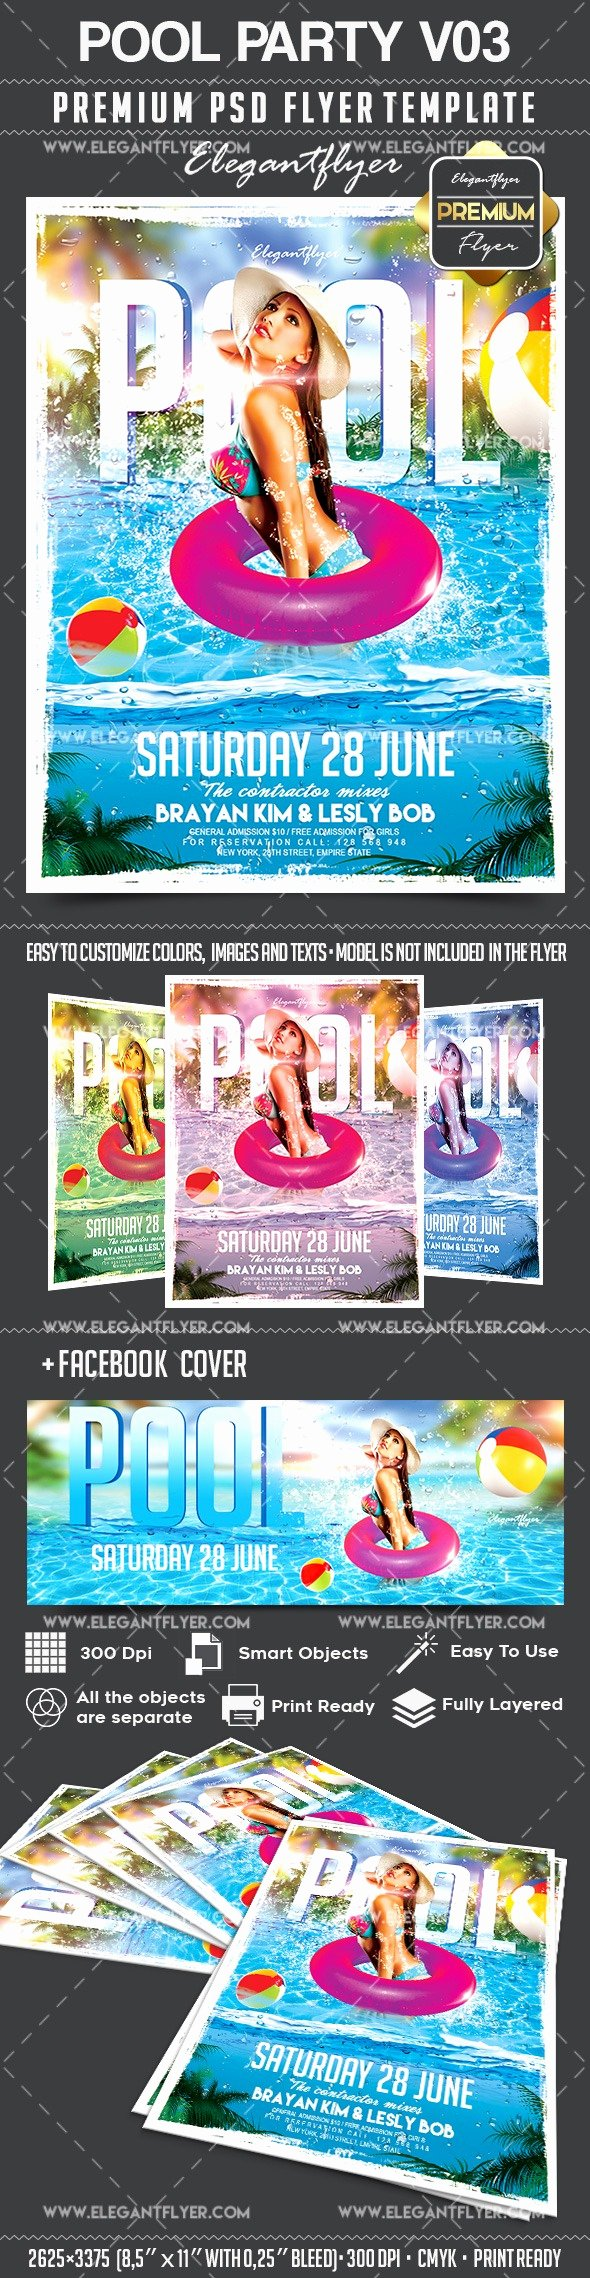 Pool Party Flyers Templates Awesome Pool Party V03 – Flyer Psd Template – by Elegantflyer